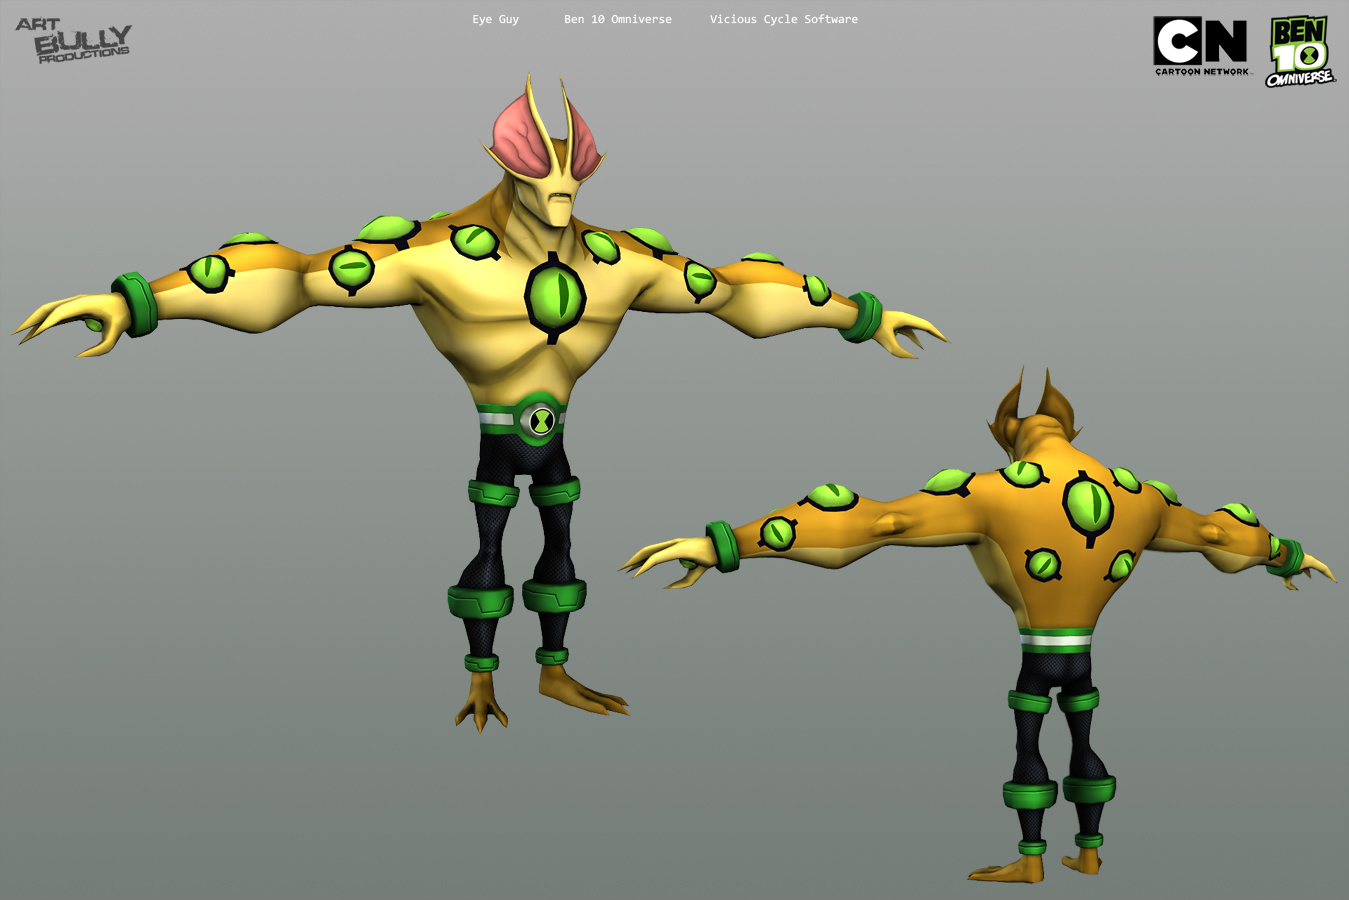 ben 10 characters art bully productions llc game and cinematic